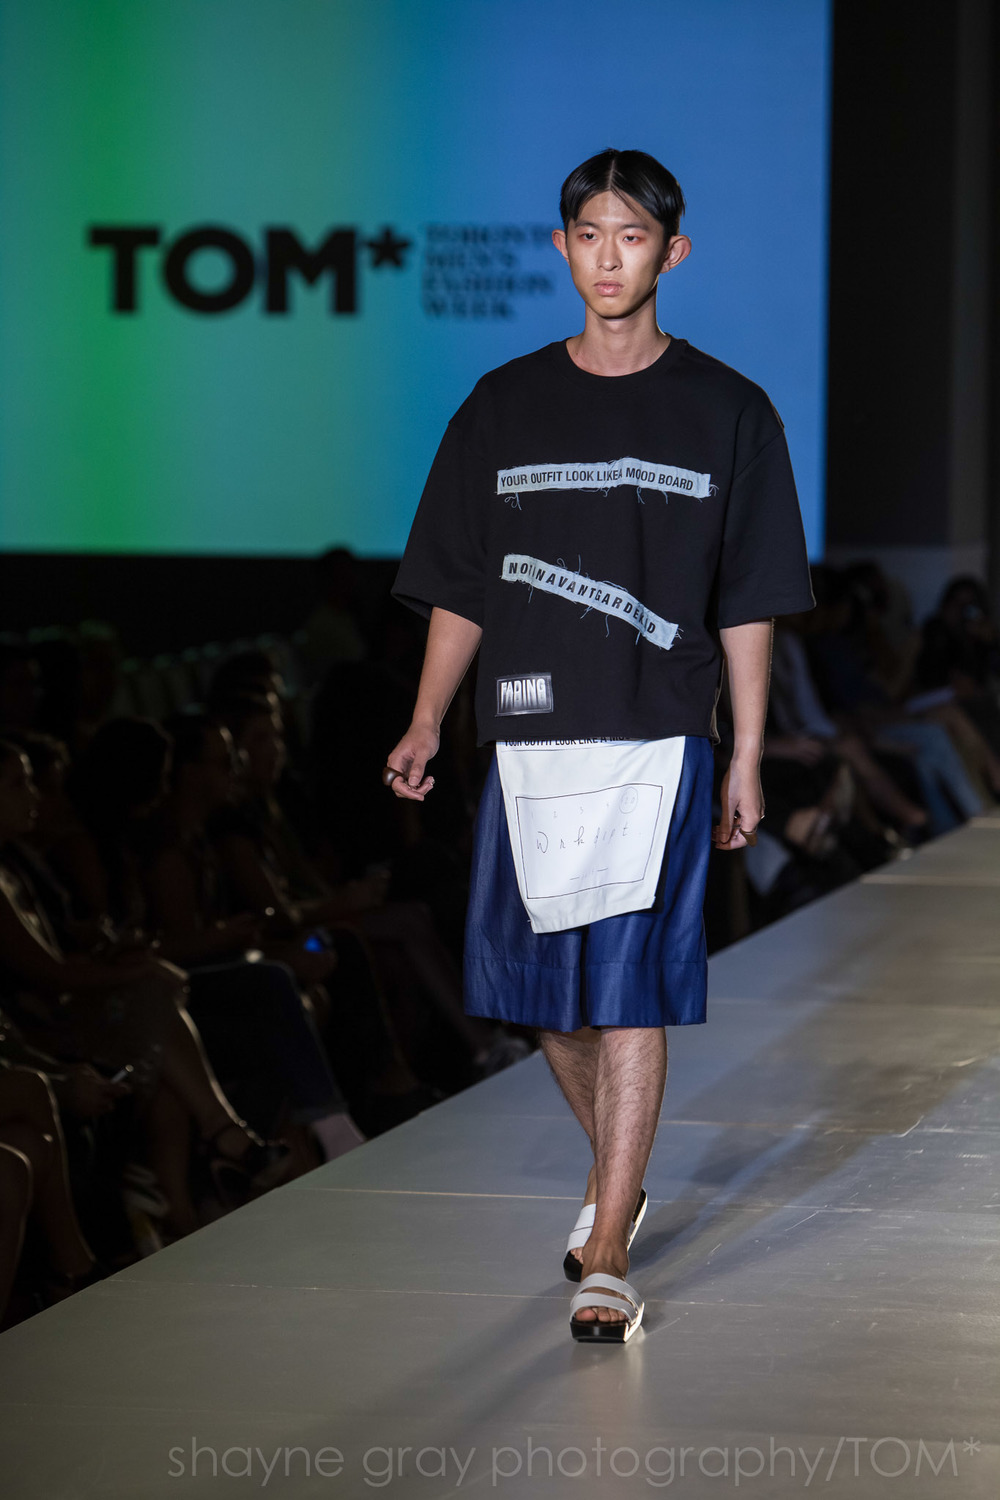 Shayne-Gray-Toronto-men's-fashion_week-TOM-wrkdept-8687.jpg